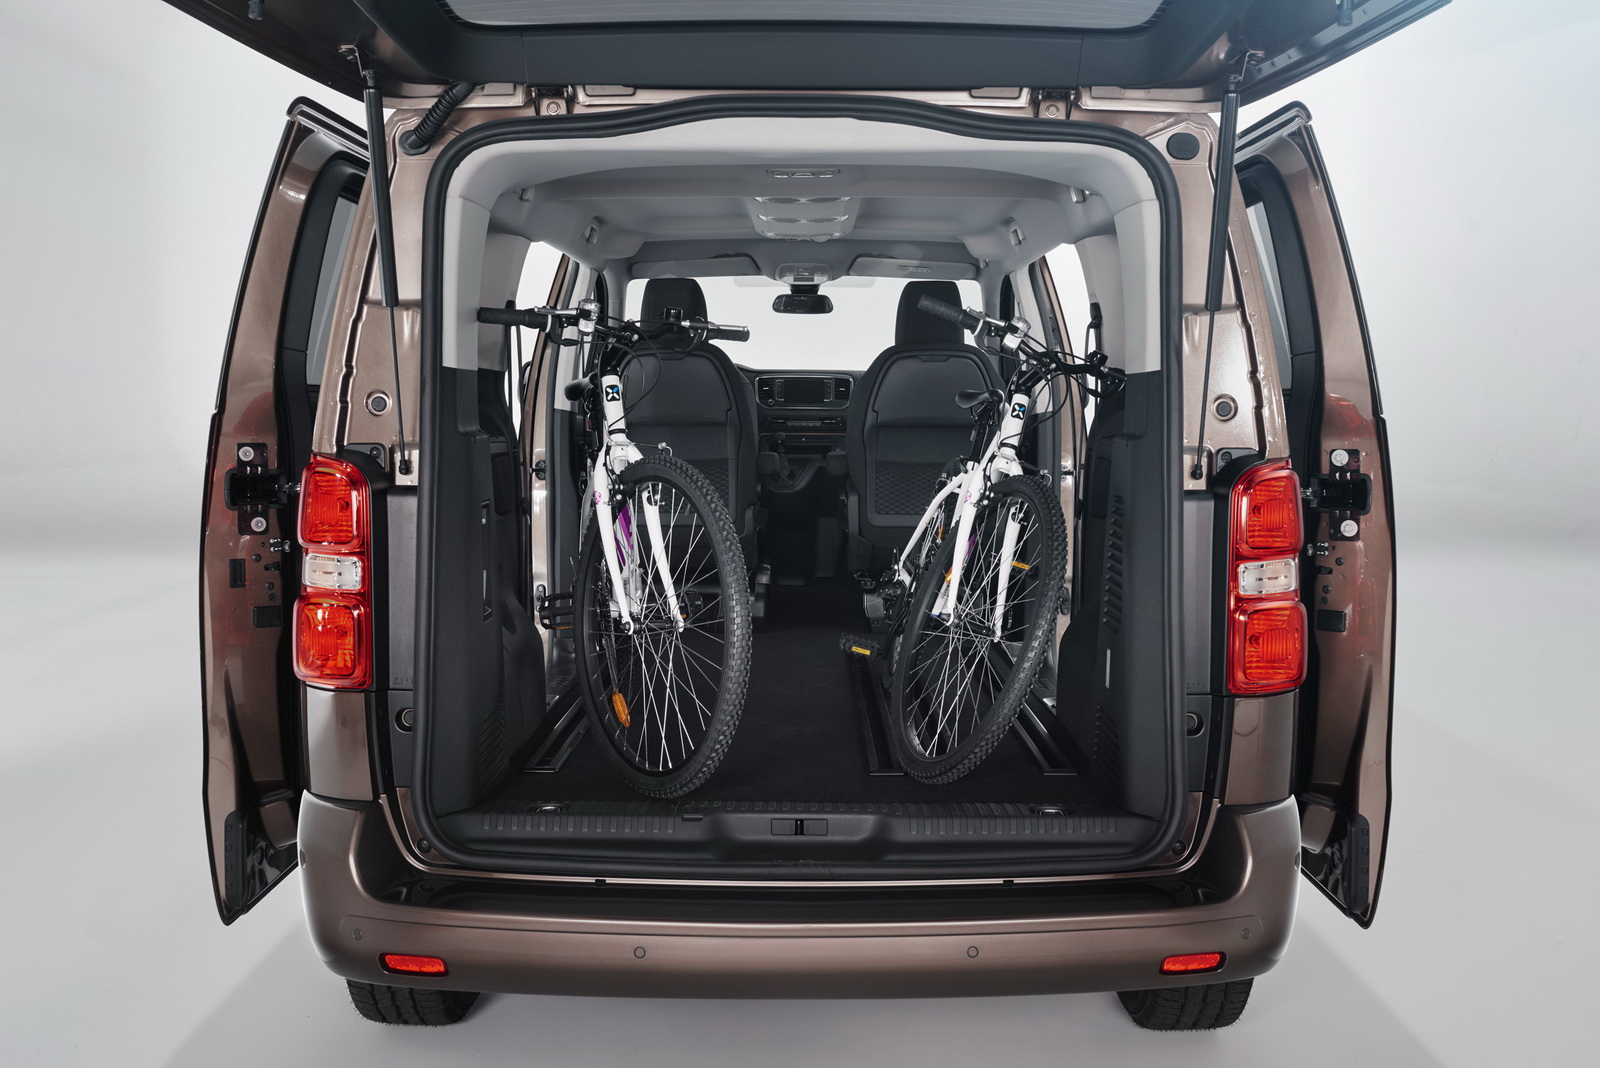 New Toyota Proace Verso Mpv Detailed Offers Seating For